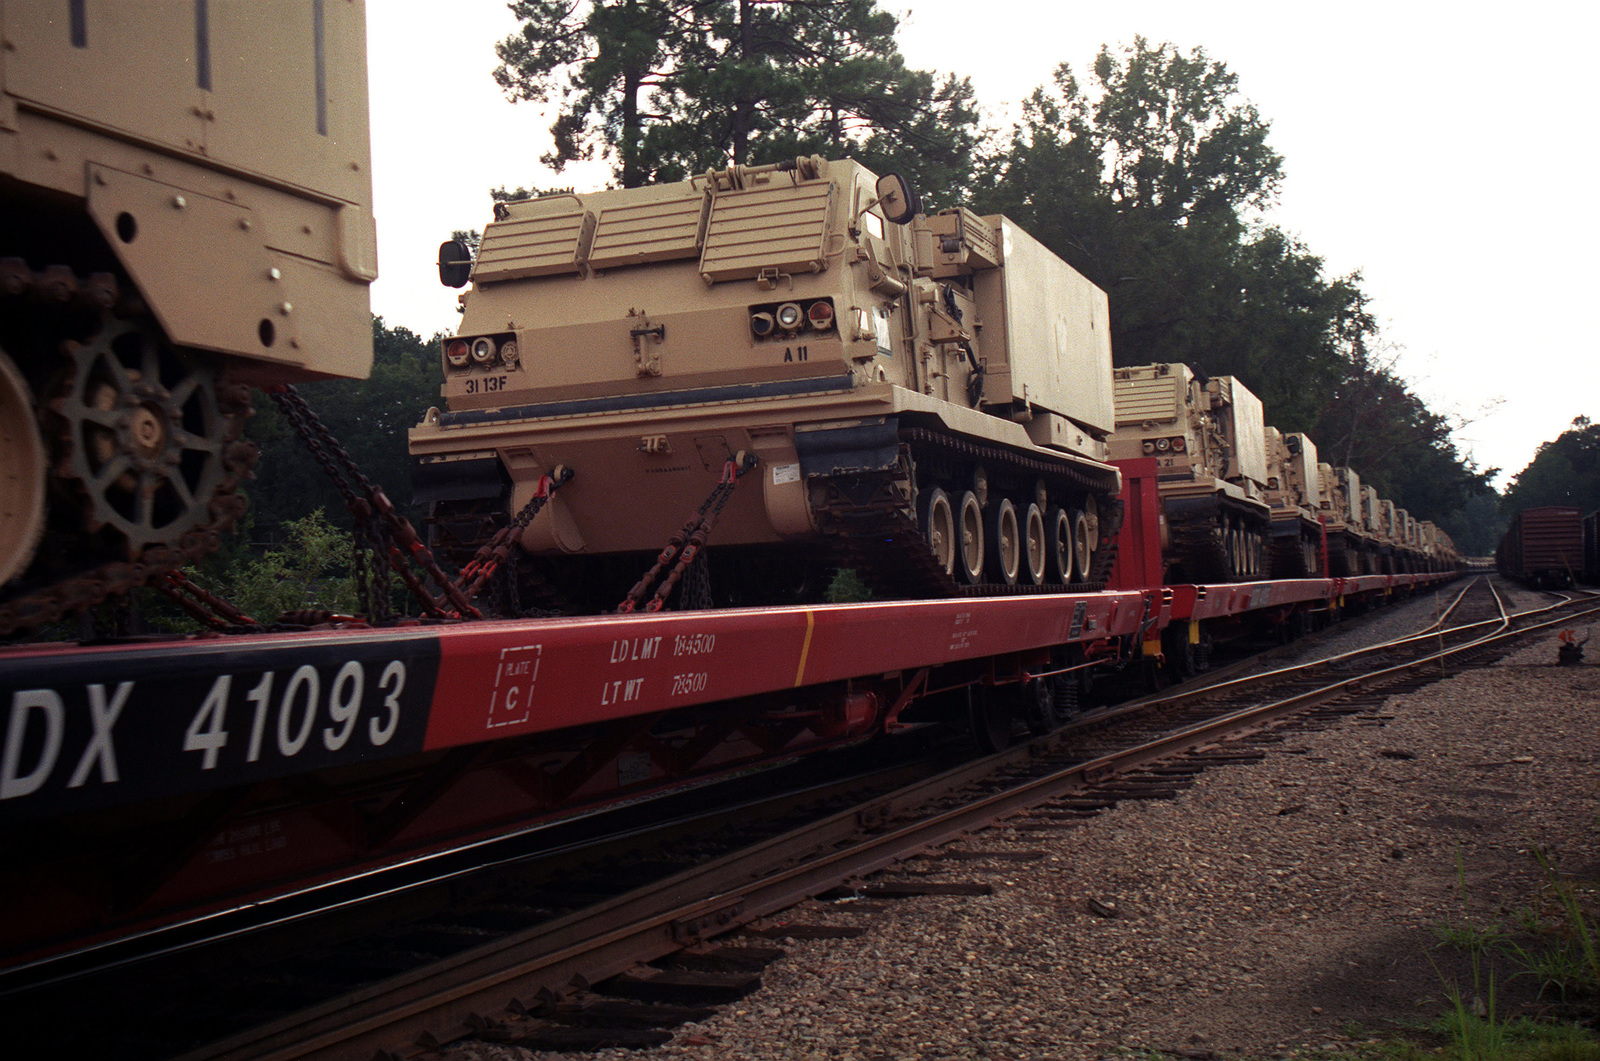 A number of multiple launch rocket systems (MLRS) are chained on railroad flatcars for transport between Ft. Stewart and Savannah, GA